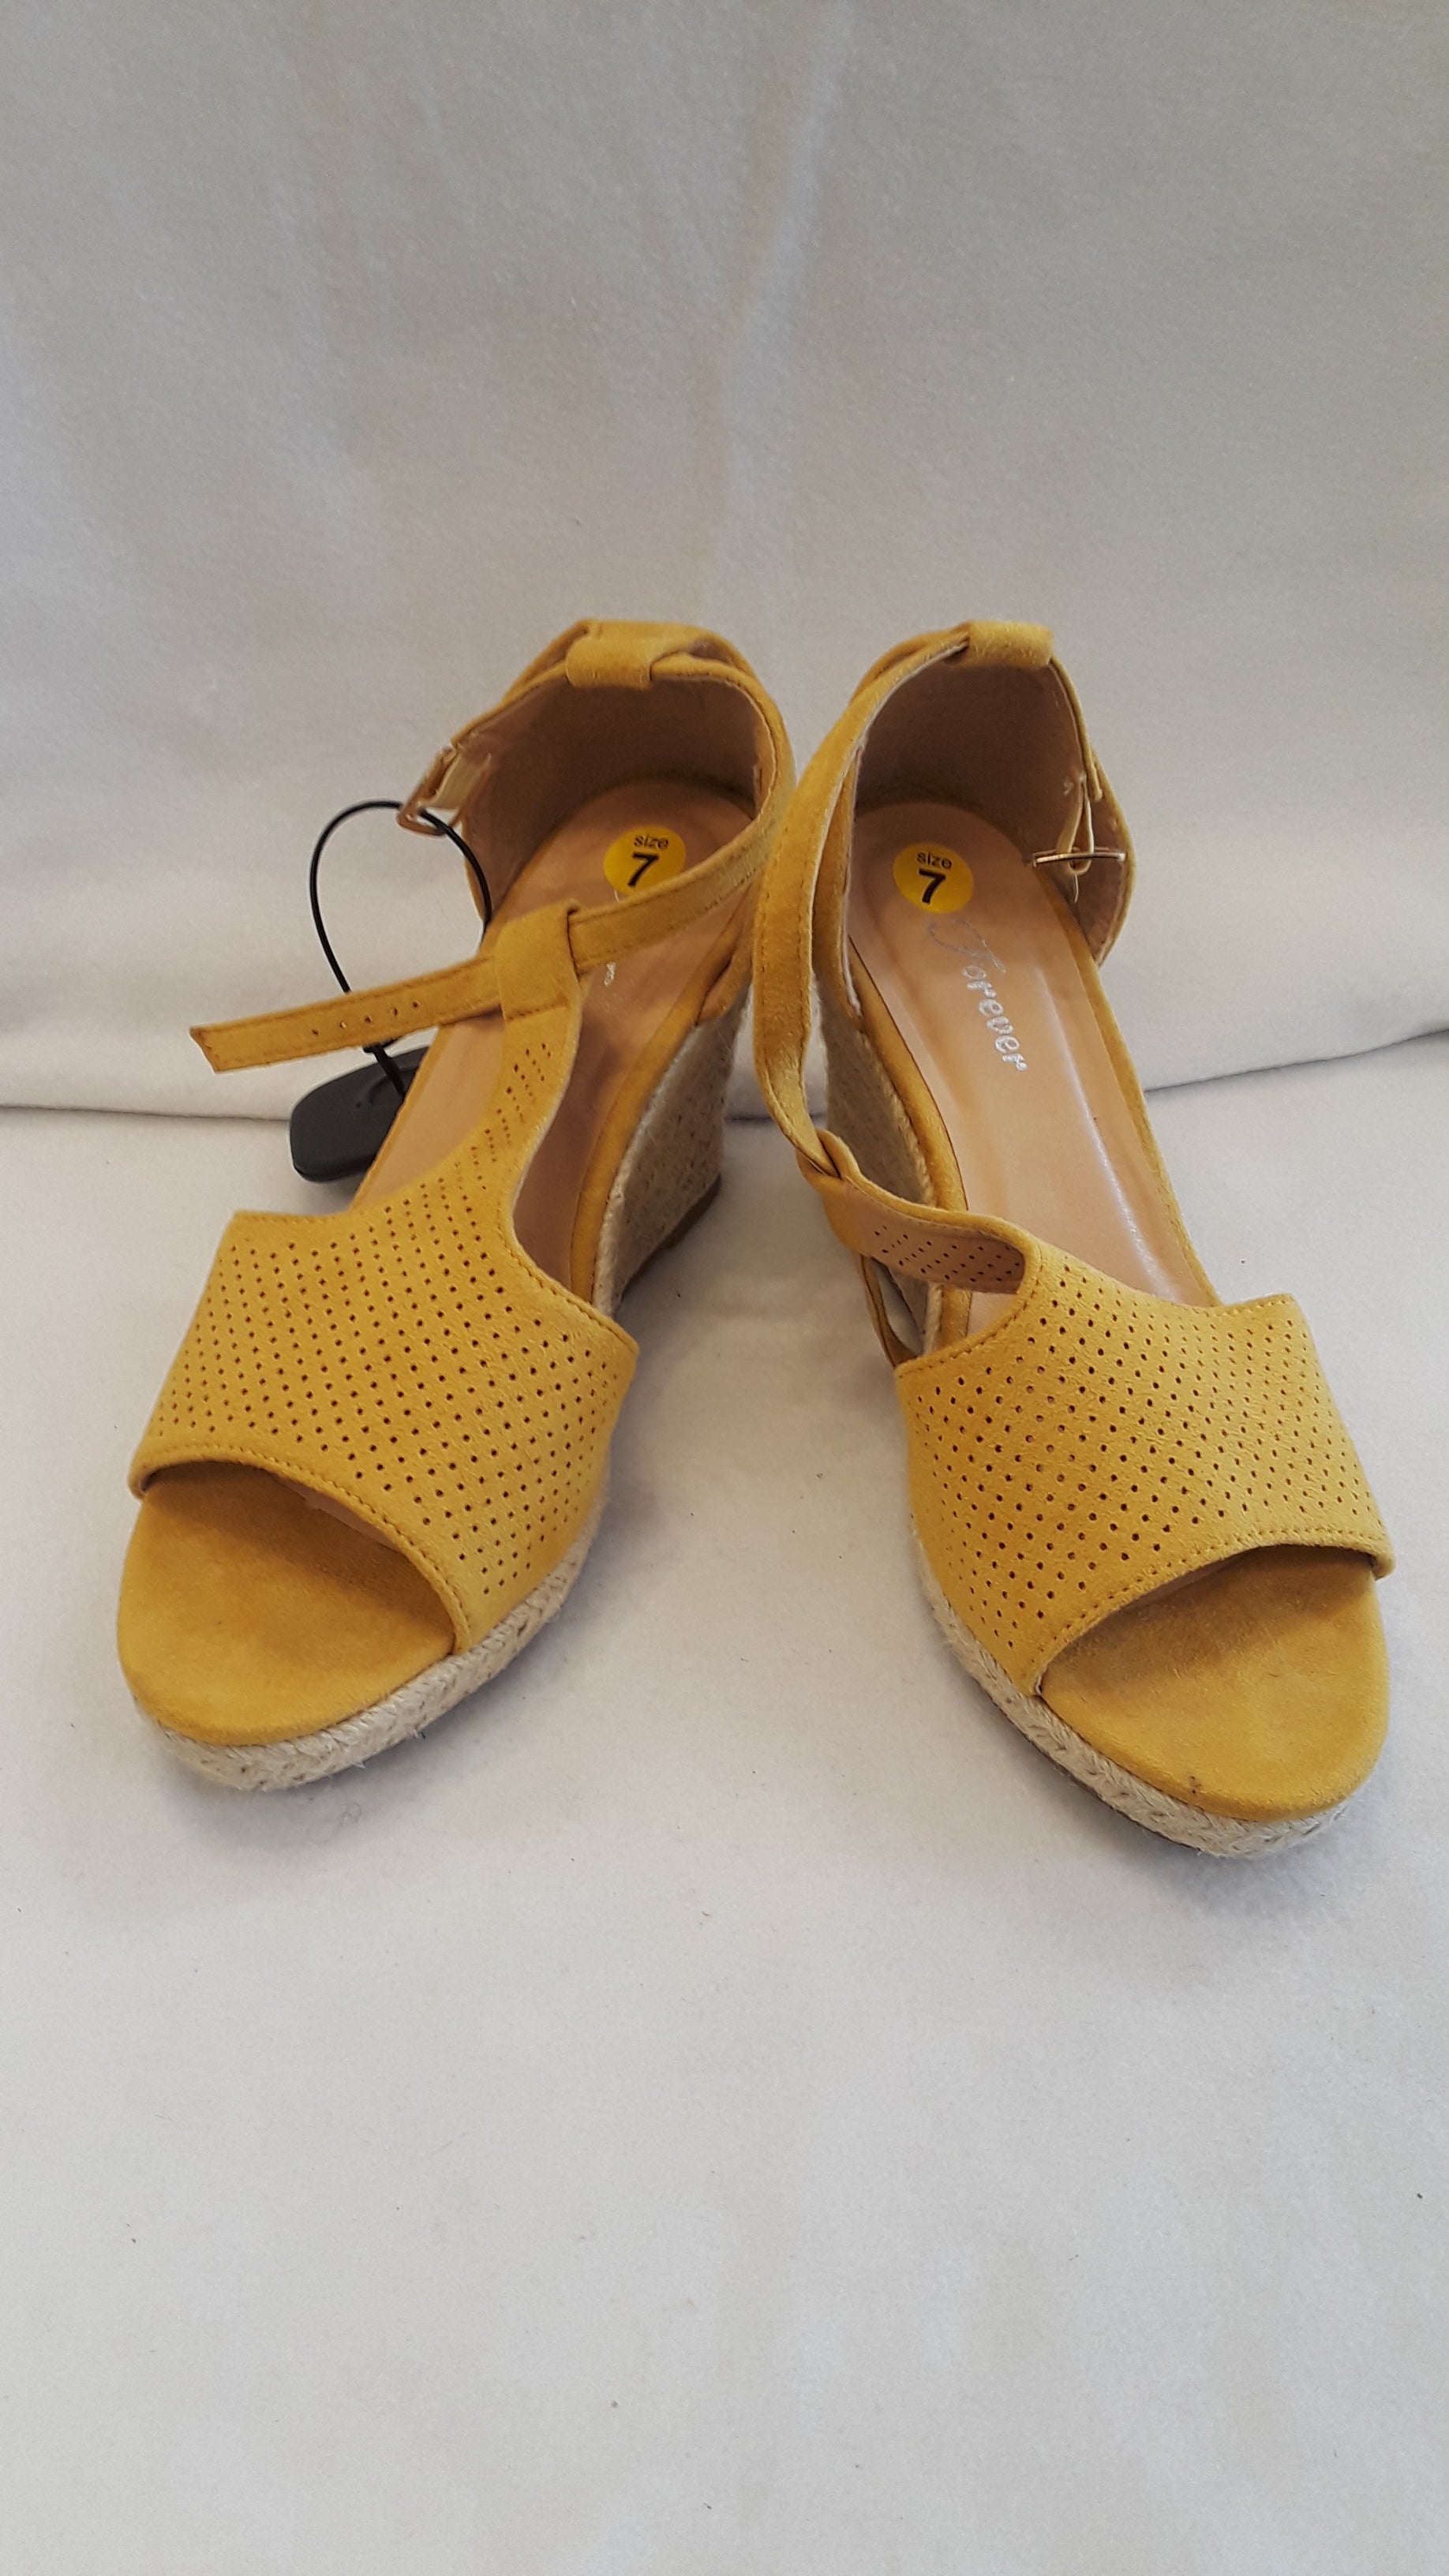 Primary Photo - BRAND: FOREVER <BR>STYLE: SHOES HIGH HEEL <BR>COLOR: YELLOW <BR>SIZE: 7 <BR>SKU: 240-24091-528